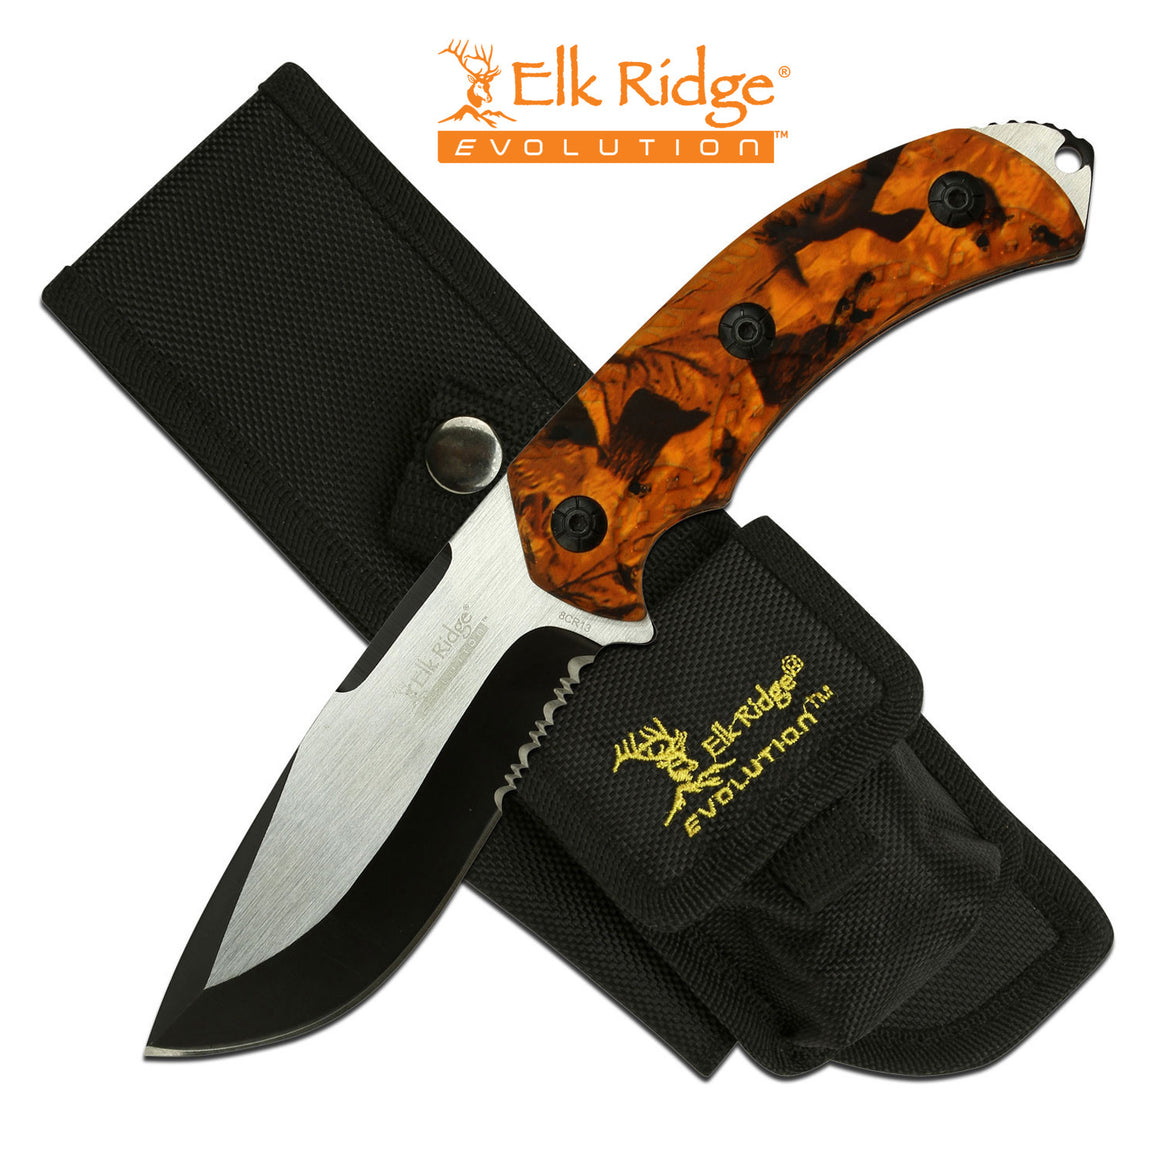 Elk Ridge Evolution ERE-FIX002-OR Fixed Blade Knife